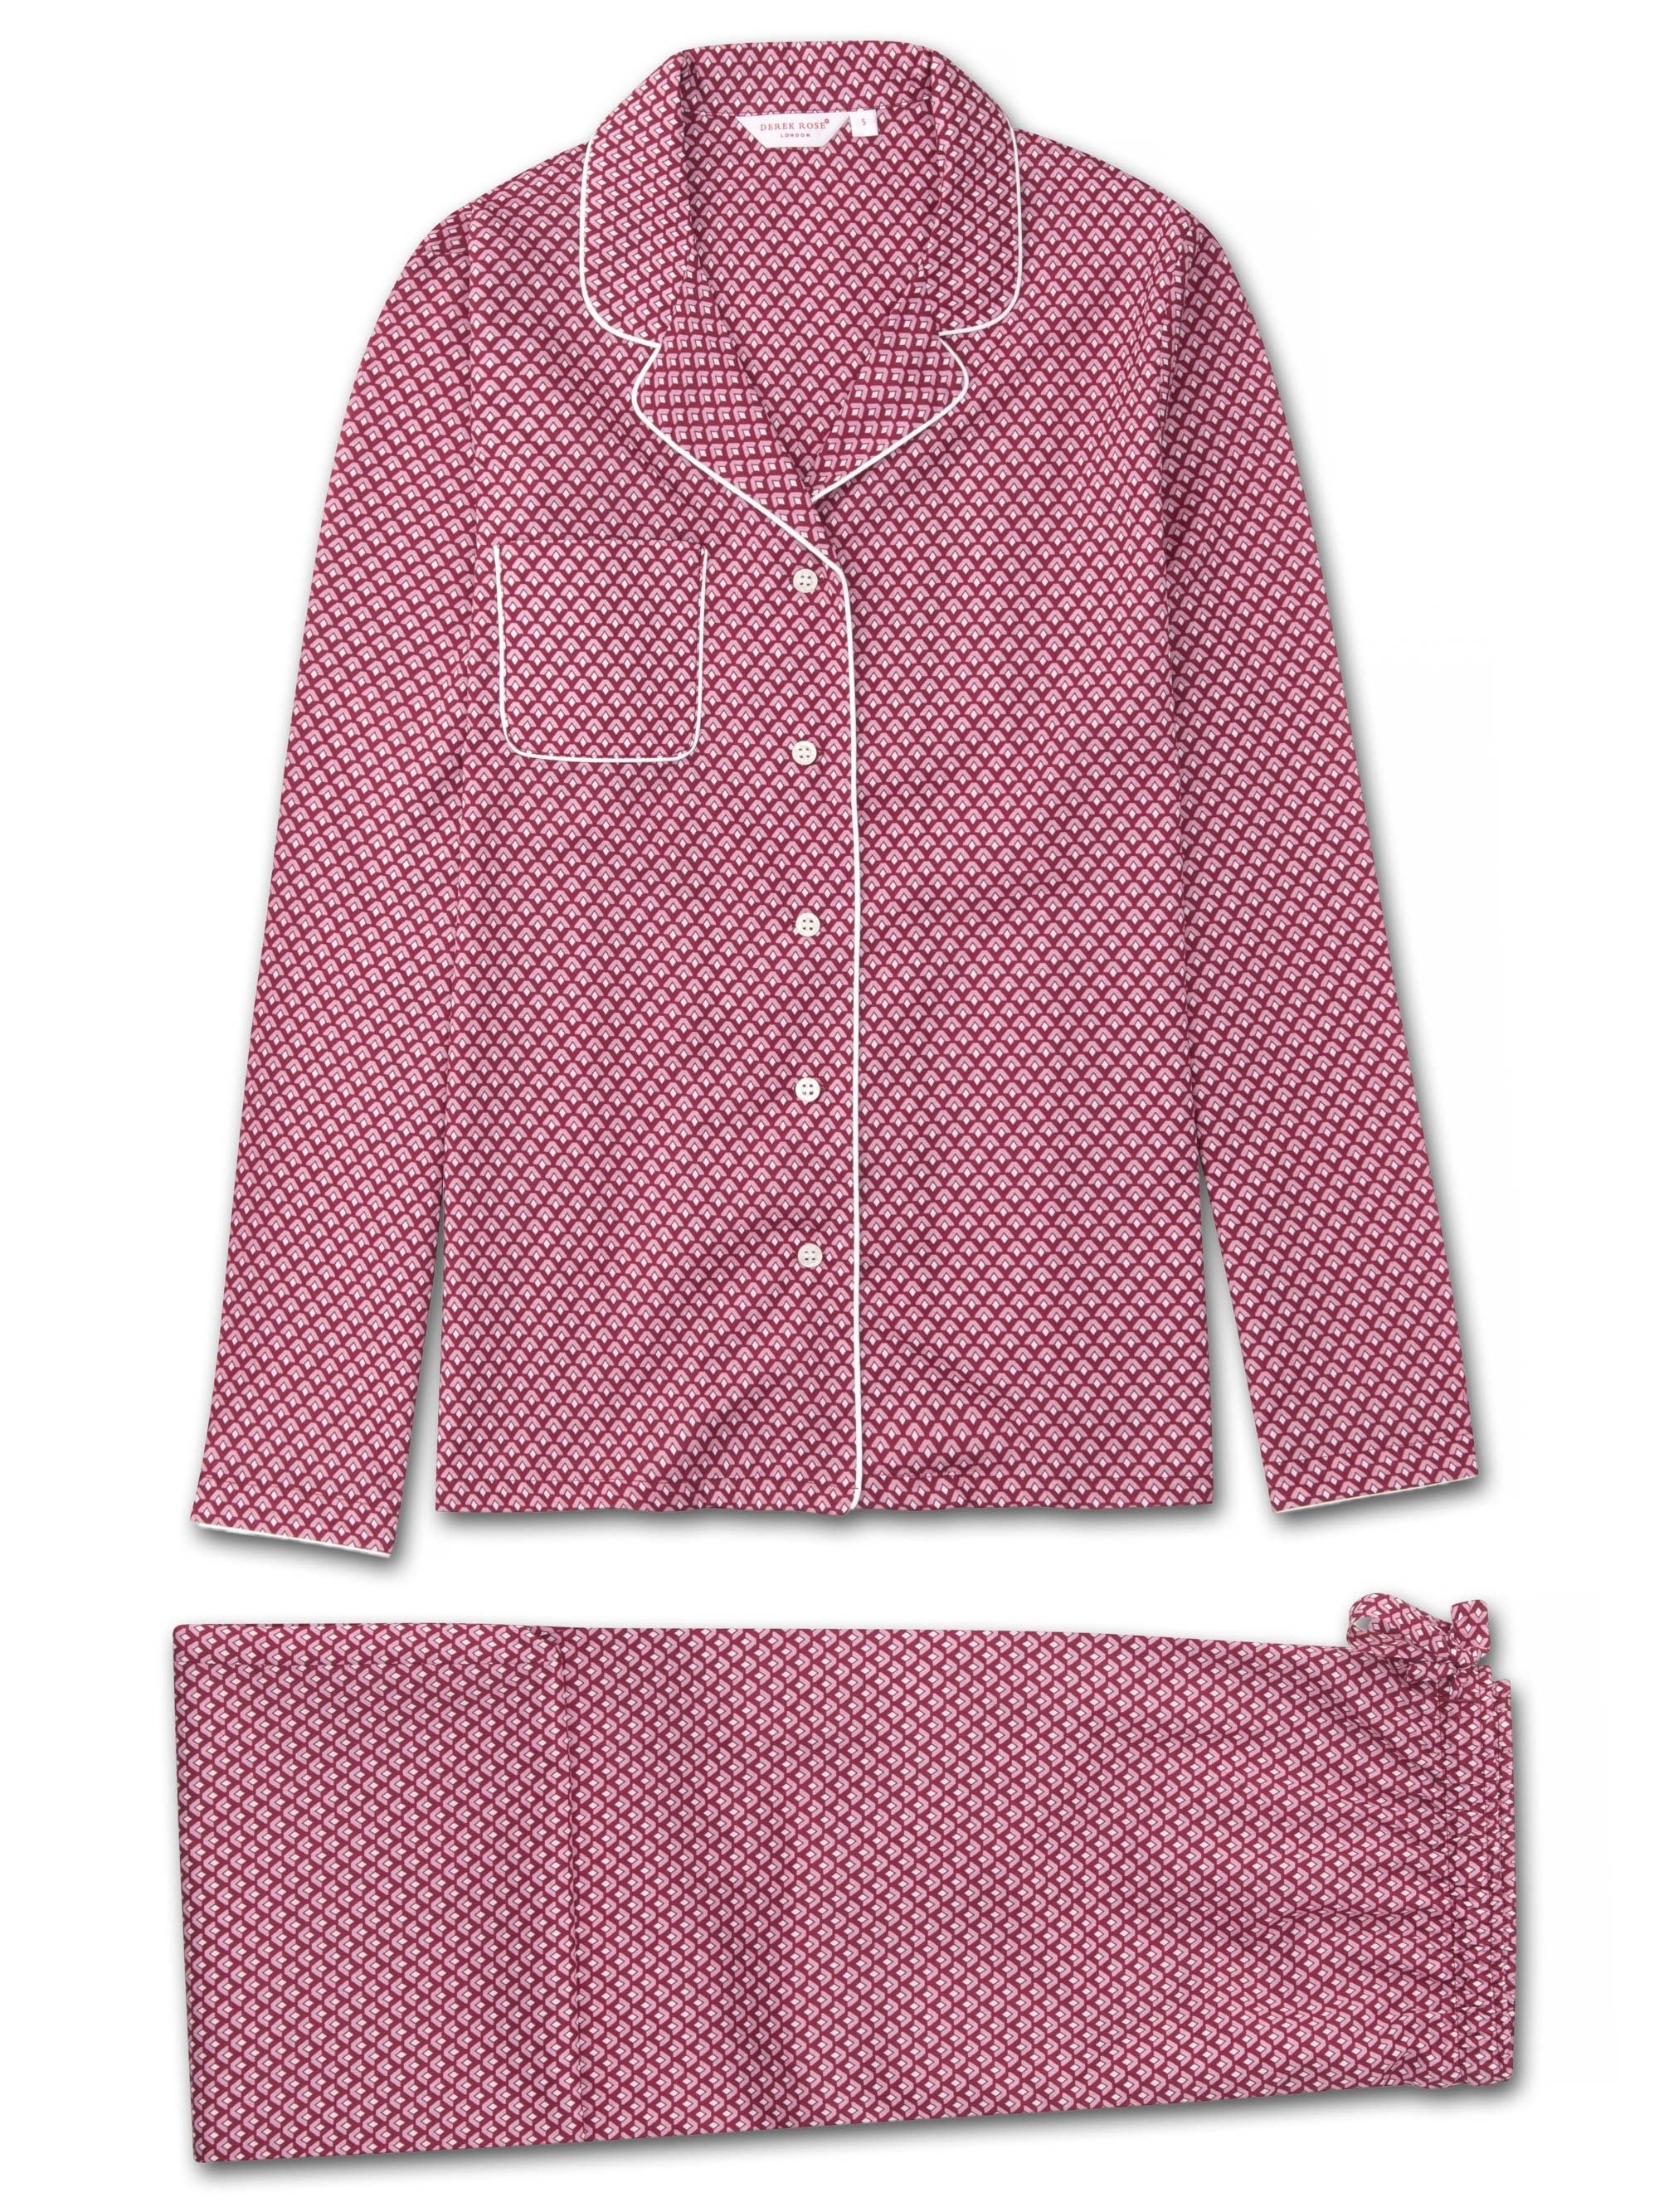 Women's Pyjamas Ledbury 31 Cotton Batiste Pink